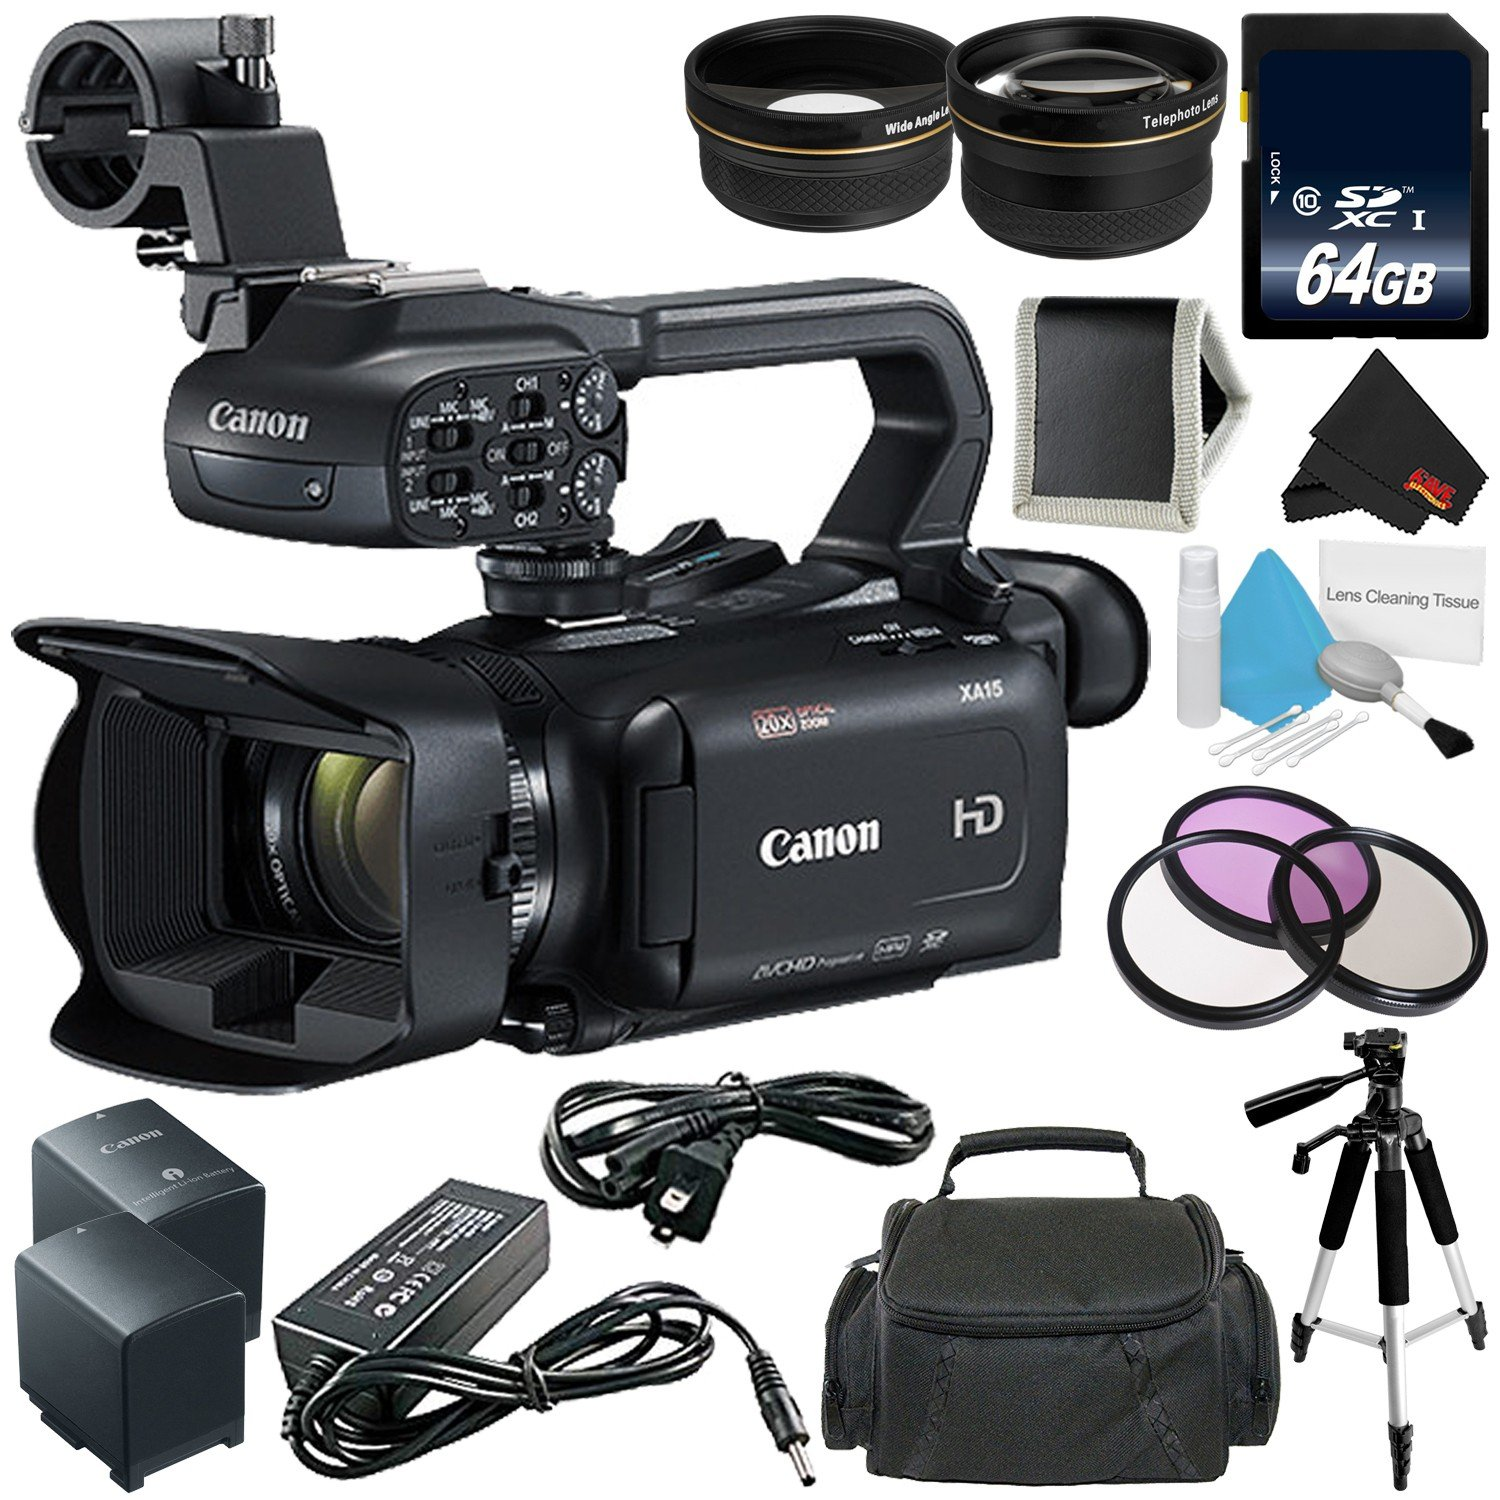 Canon XA11 Compact Professional Camcorder - Full HD with HDMI and Composite Output - Bundle with 64GB Memory Card + More